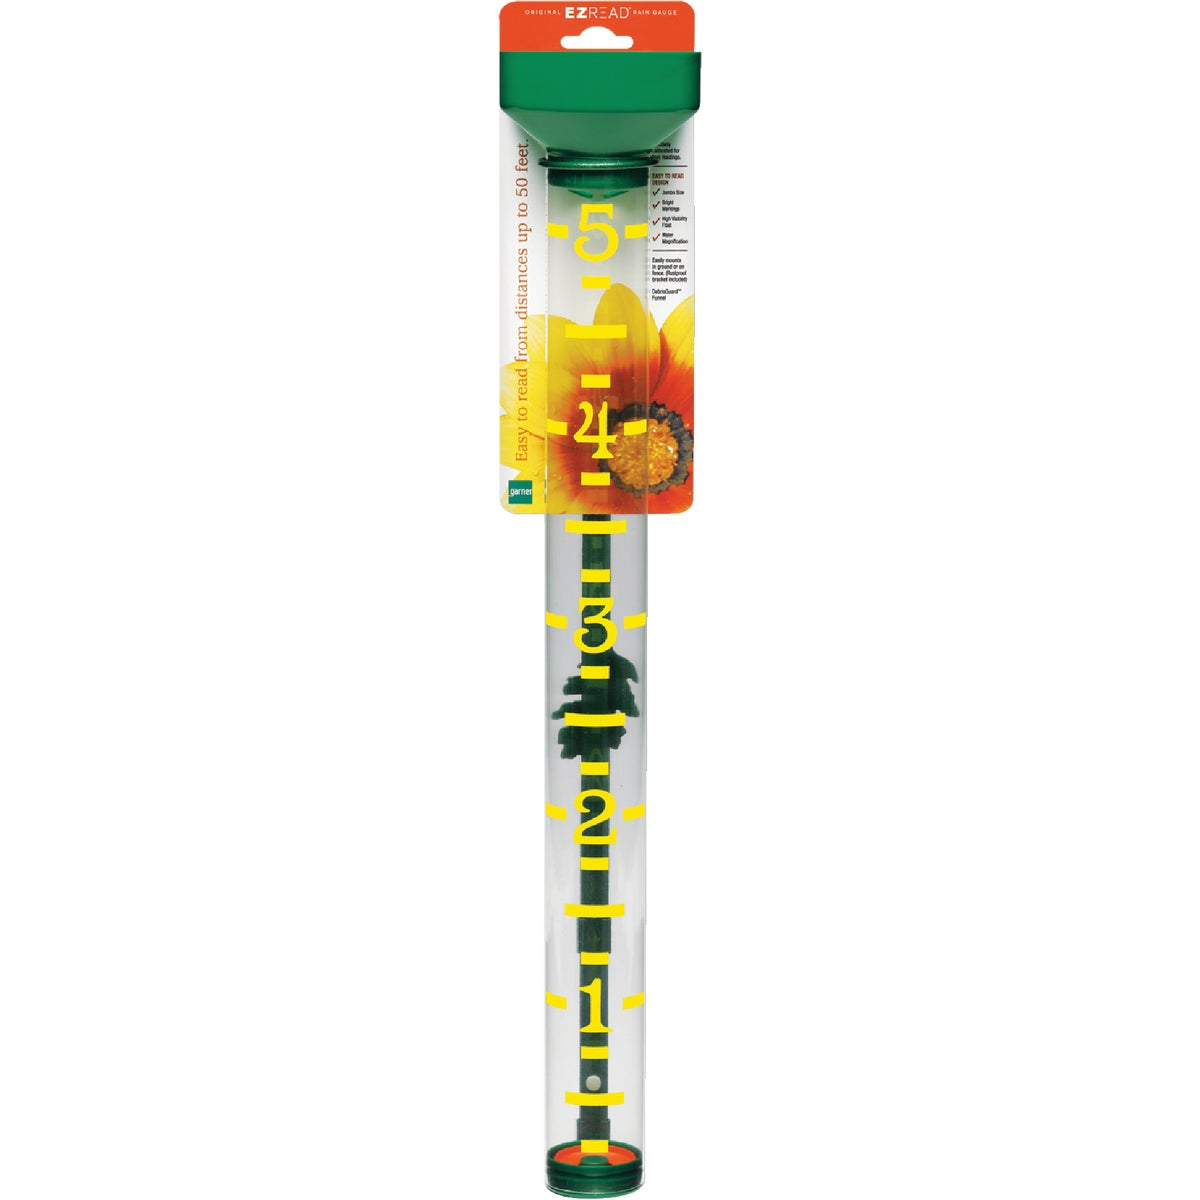 Item 607445, Jumbo size. Bright yellow markings with clear tube. High visibility float. Water magnification. Precisely calibrated for true readings. Easy-to-read from distances up to 50'.